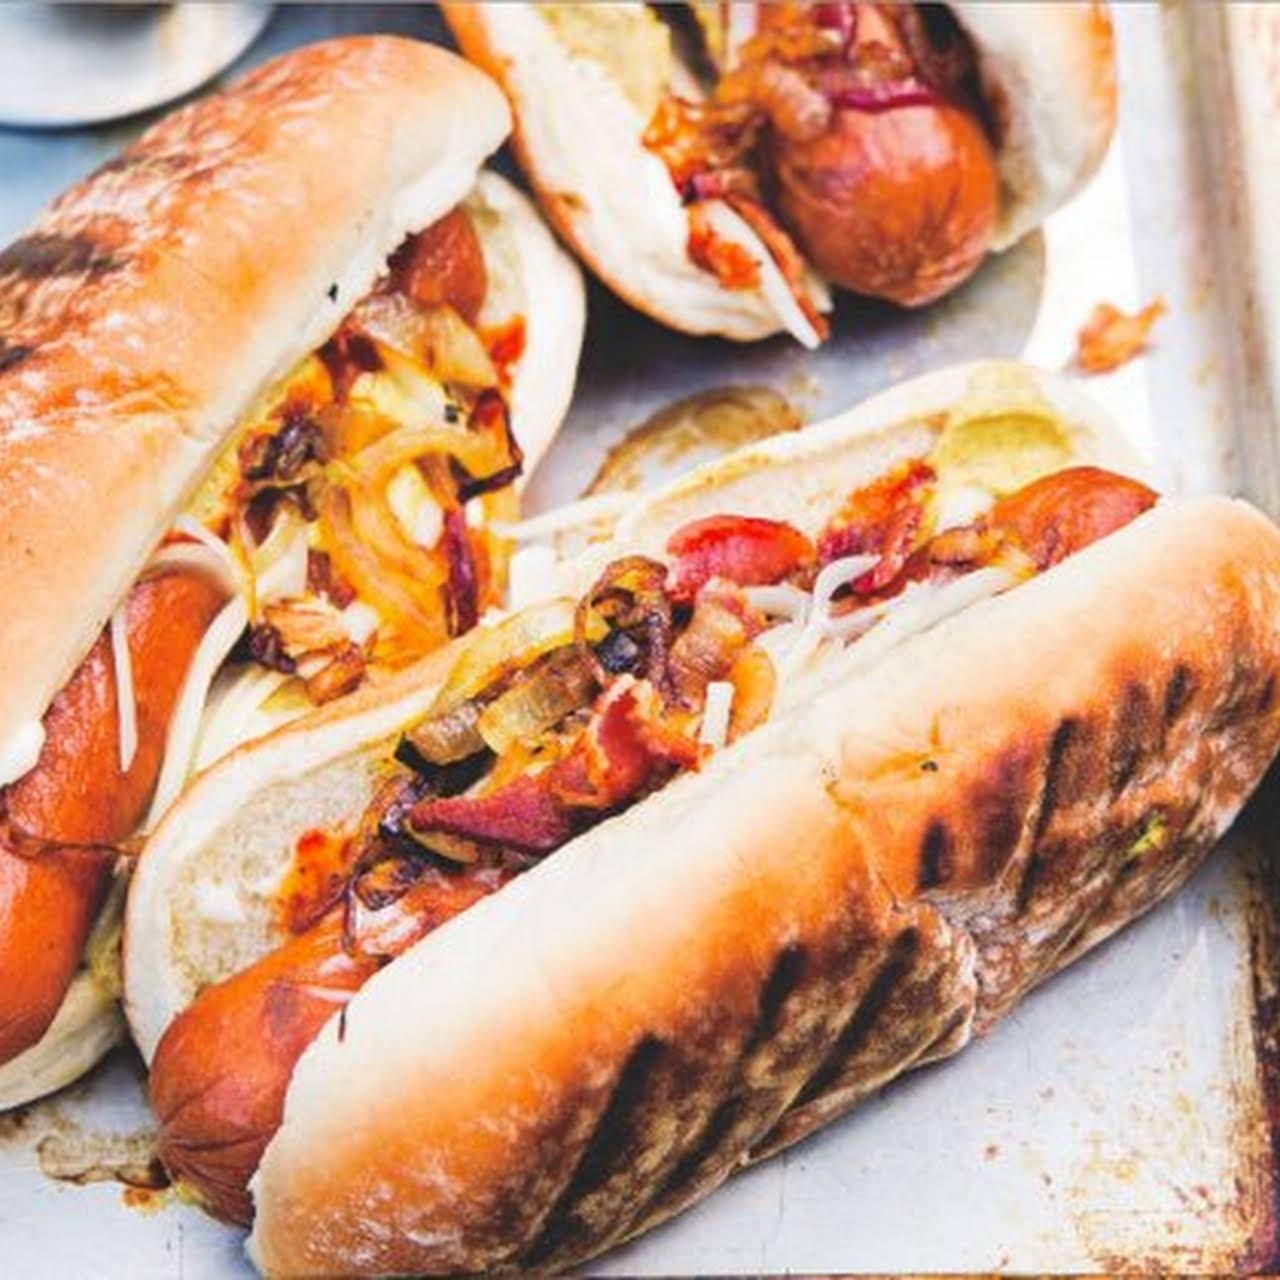 A Step-By-Step Guide To Homemade Hot Dogs